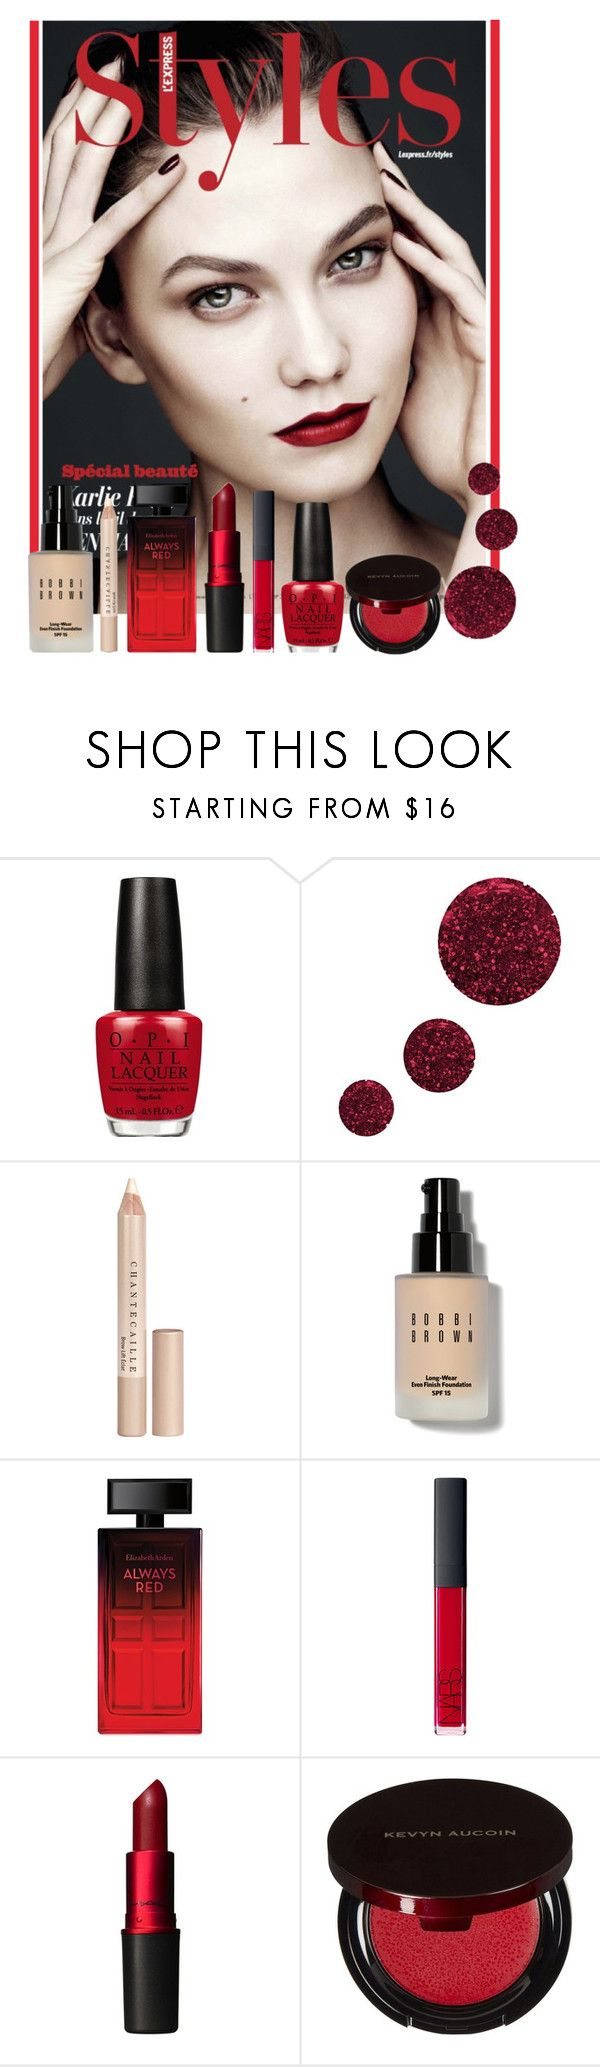 """""""Forever Red"""" by bunnylover208 ❤ liked on Polyvore featuring beauty, OPI, Topshop, Chantecaille, Bobbi Brown Cosmetics, Elizabeth Arden, NARS Cosmetics, MAC Cosmetics and Kevyn Aucoin"""